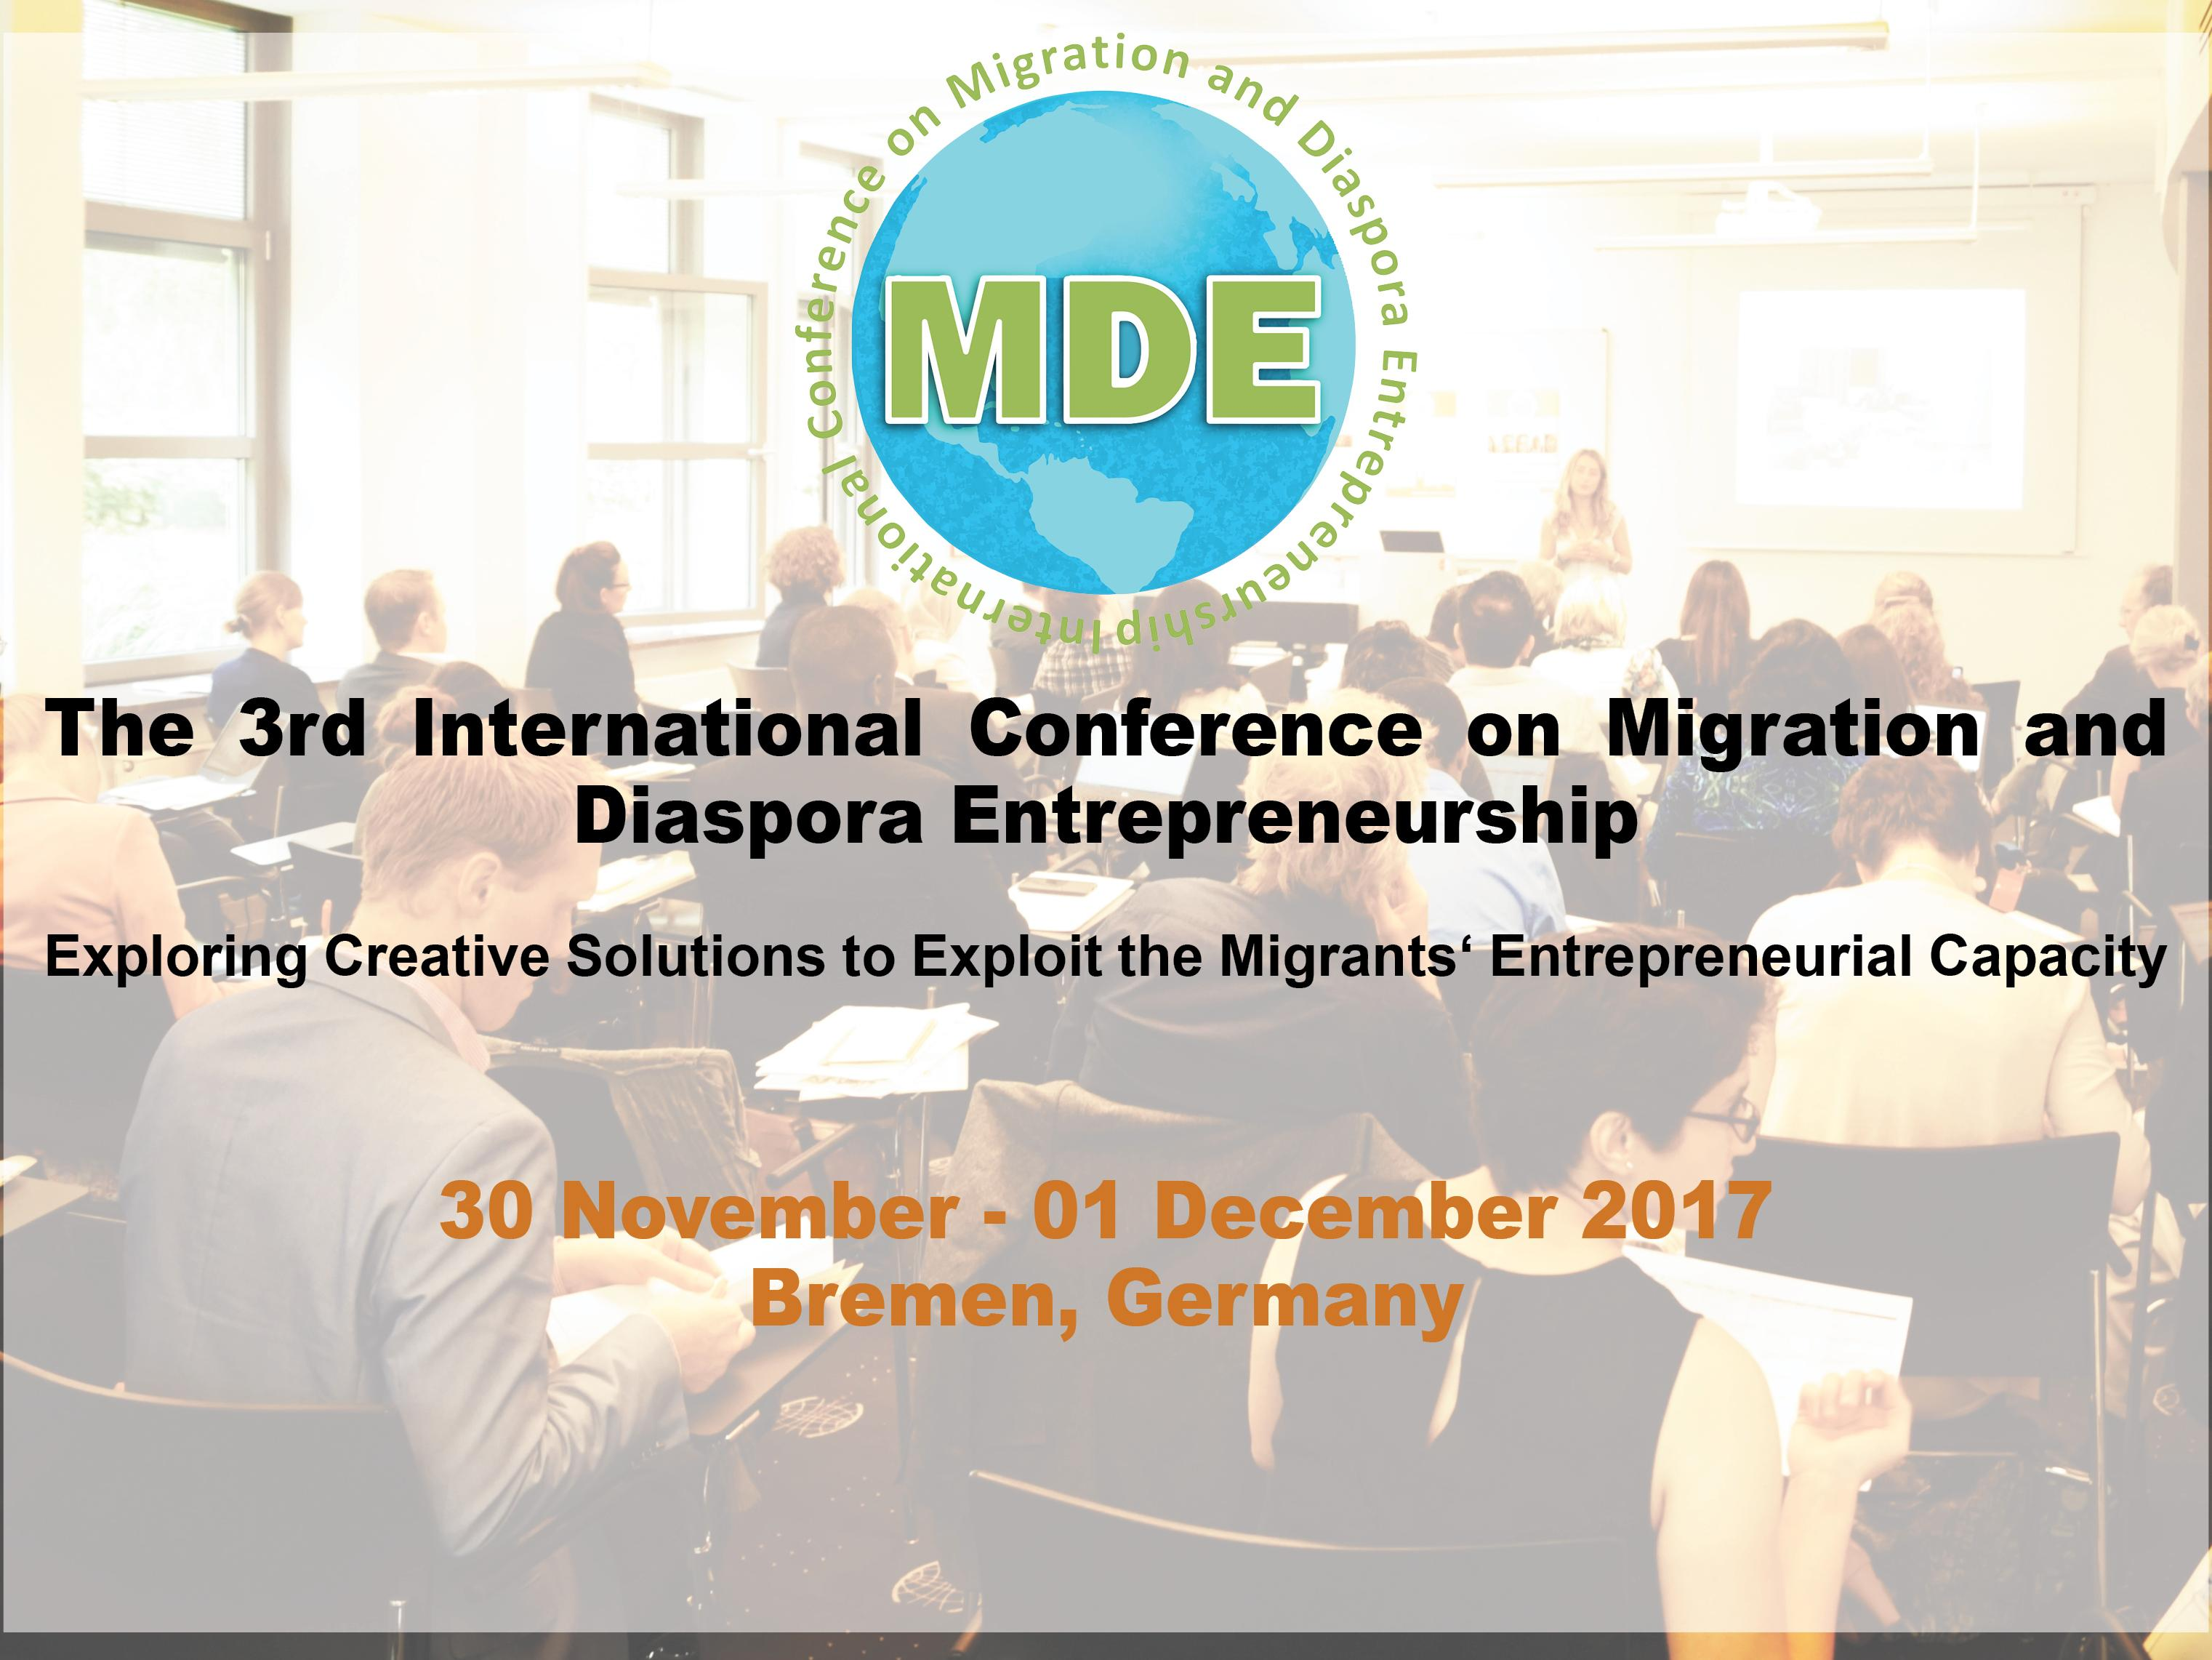 The 3rd International Conference on Migration and Diaspora Entrepreneurship - Exploring Creative Solutions to Exploit the Migrants´ Entrepreneurial Capacity 30.November -01- December 2017 - Bremen, Germany